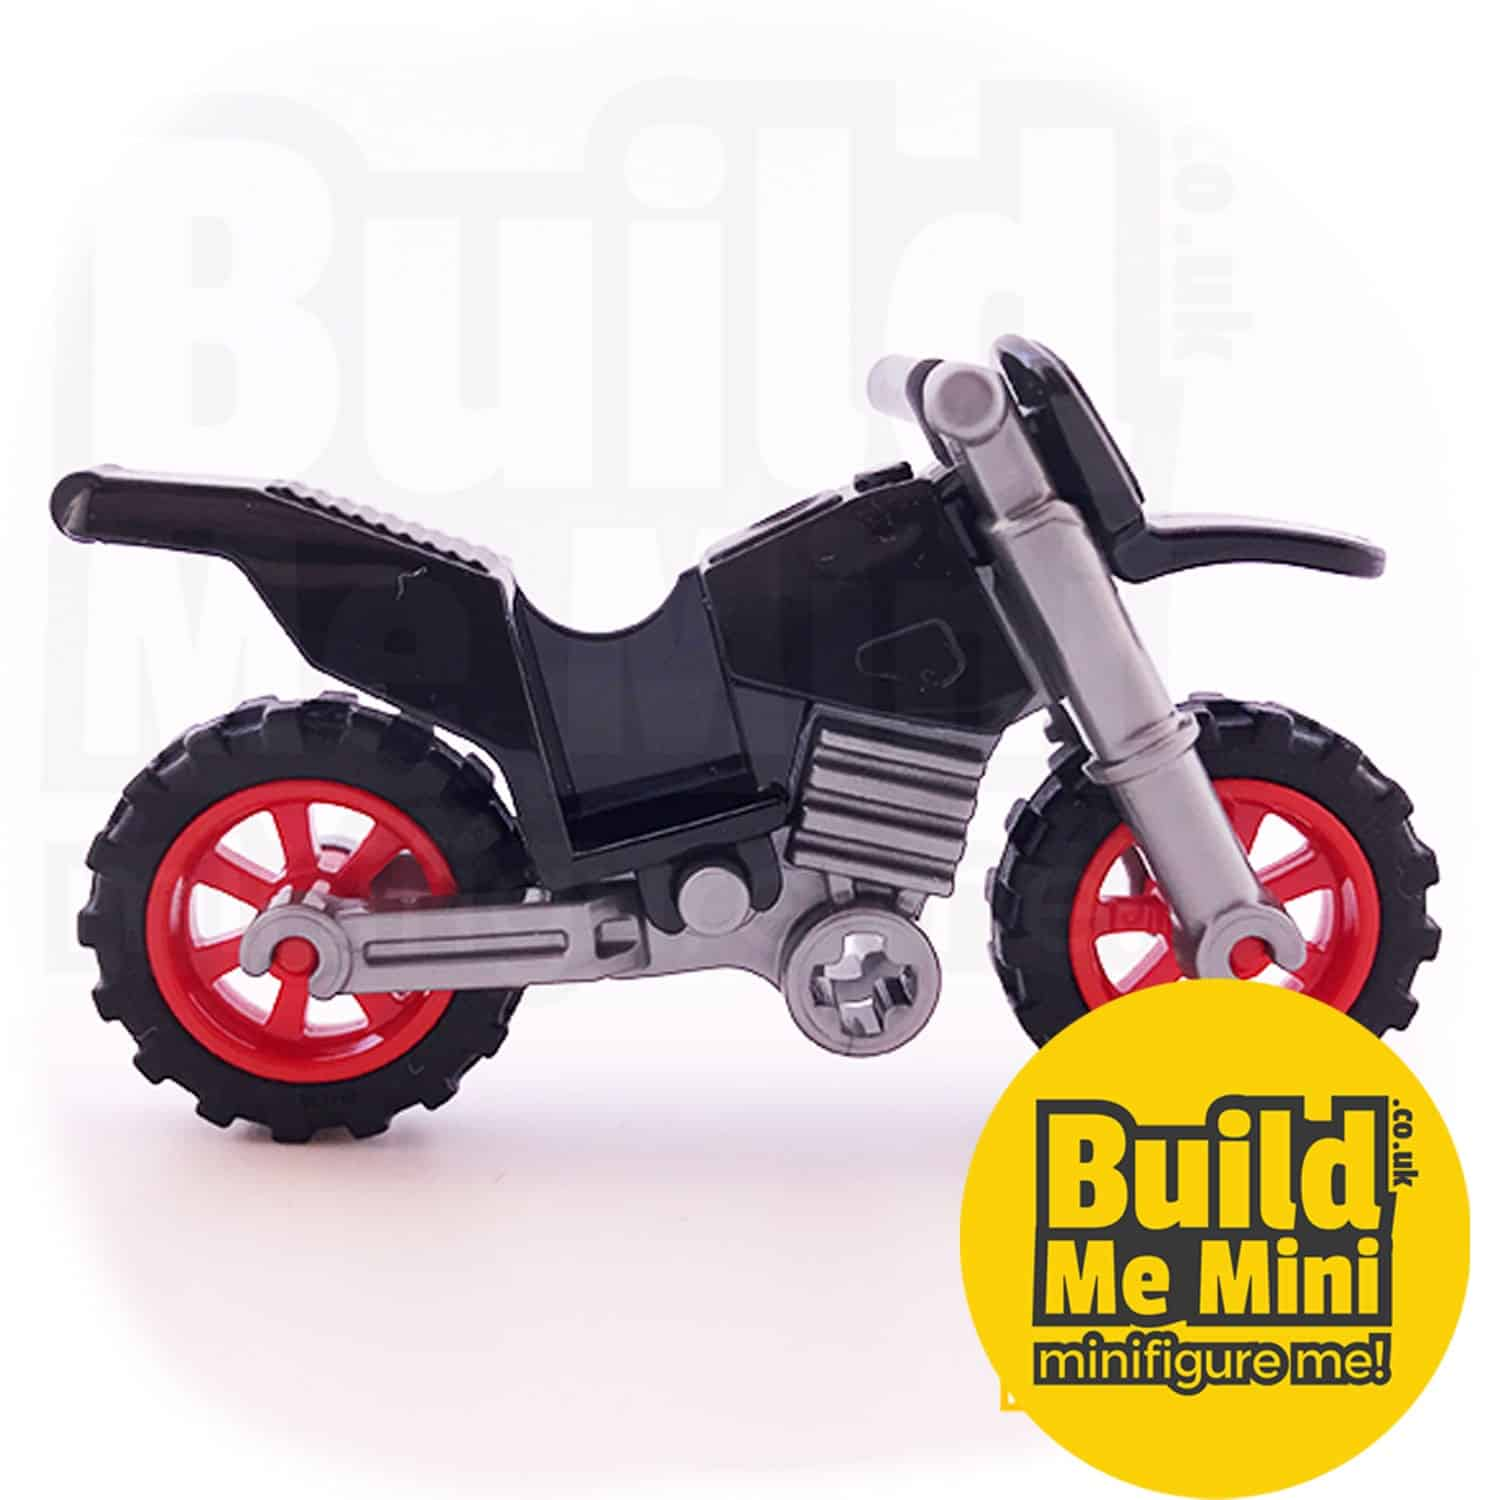 Lego Minifigure Scale Rally Motorbike (Multiple Colours)